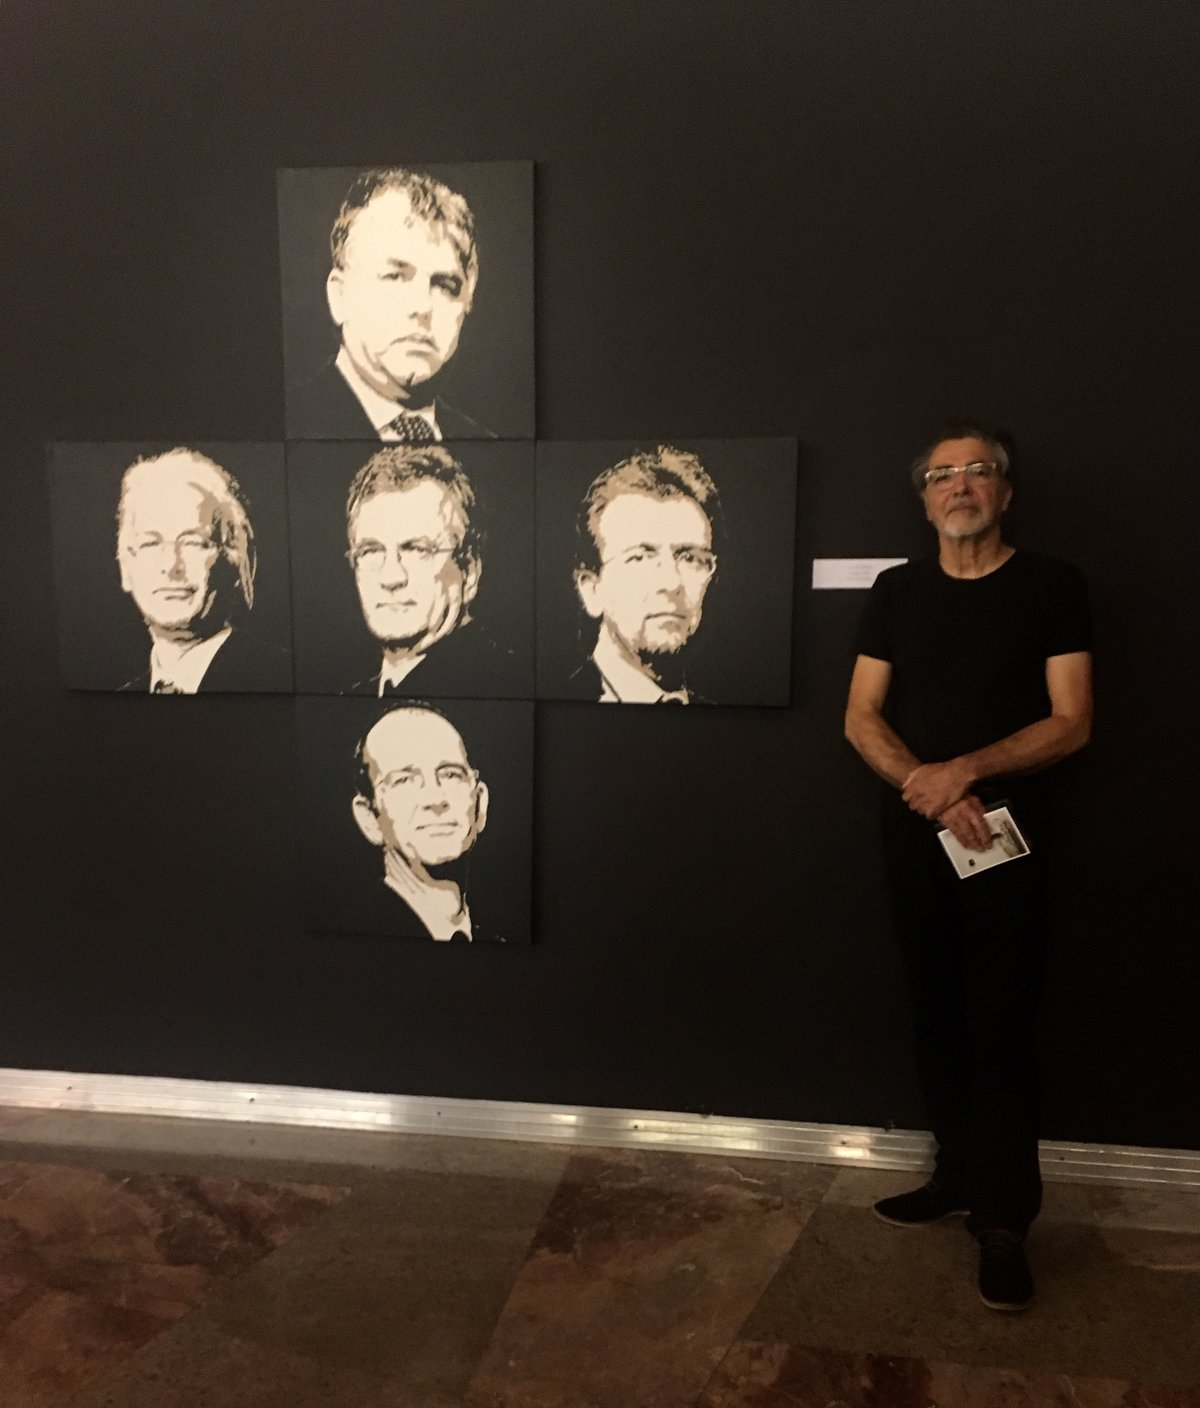 Matjaž Stopar (Slovenia) in front of his painting of the IRWIN group members' portrait.